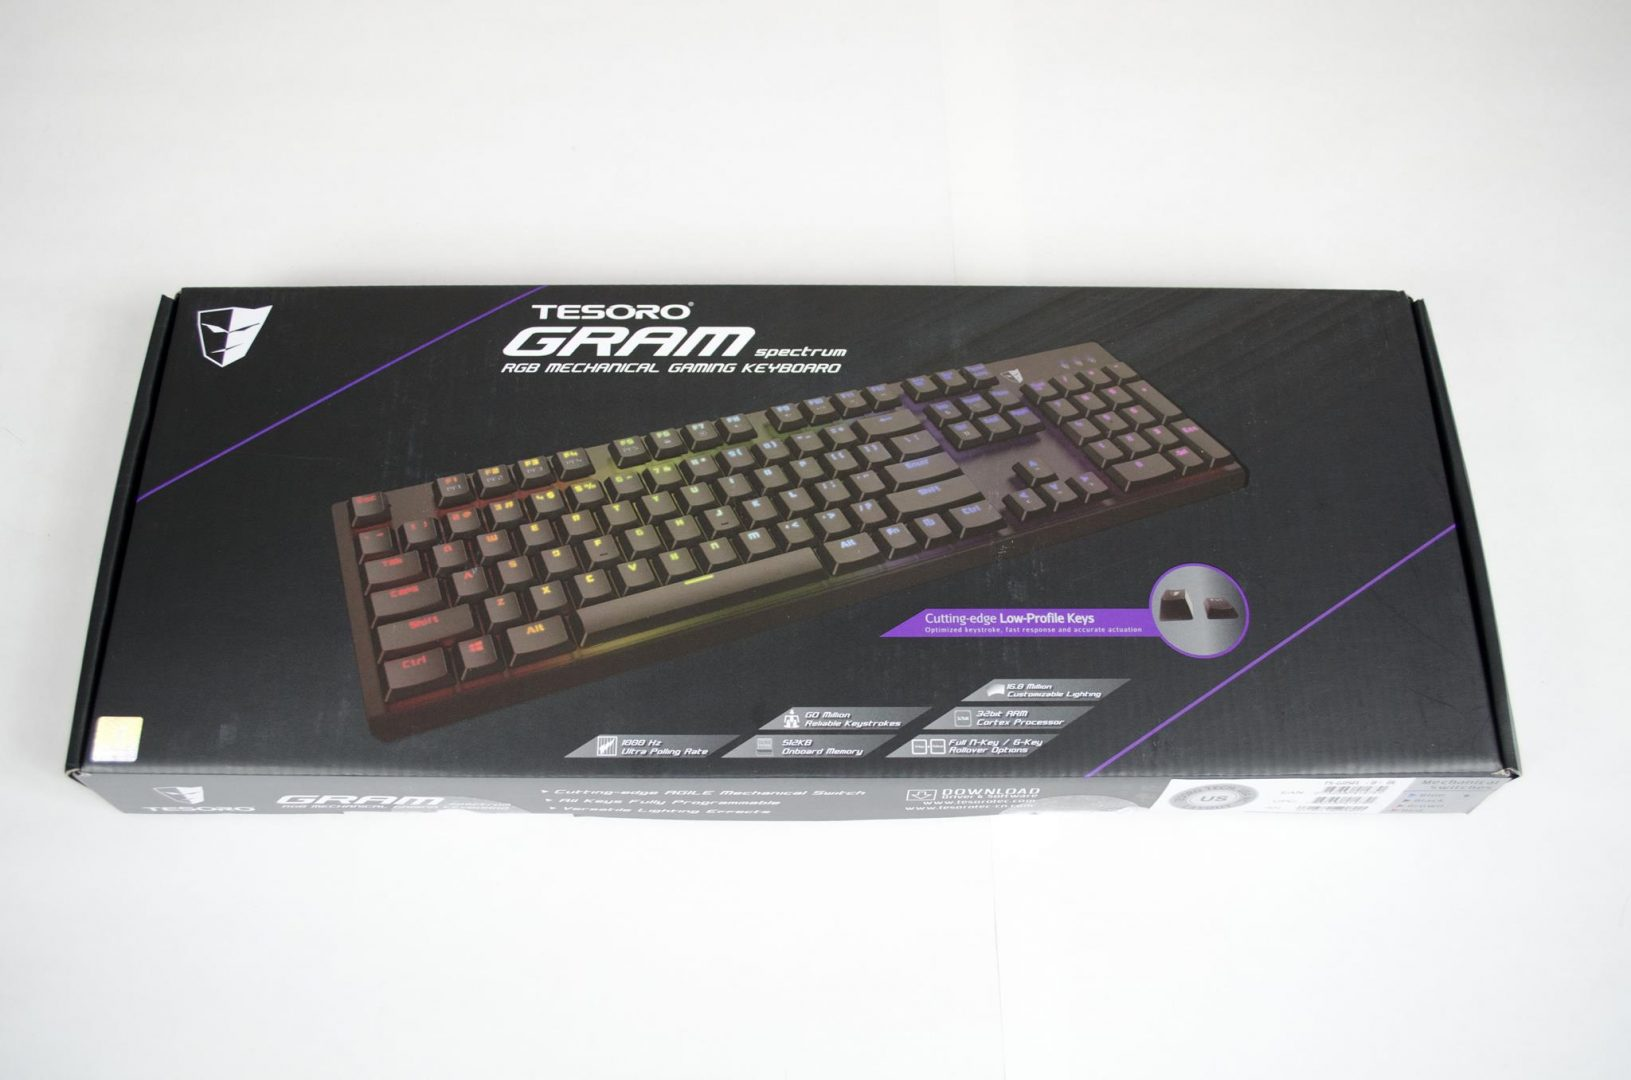 tesoro-gram-spectrum-rgm-gaming-mechanical-keyboard-review_4